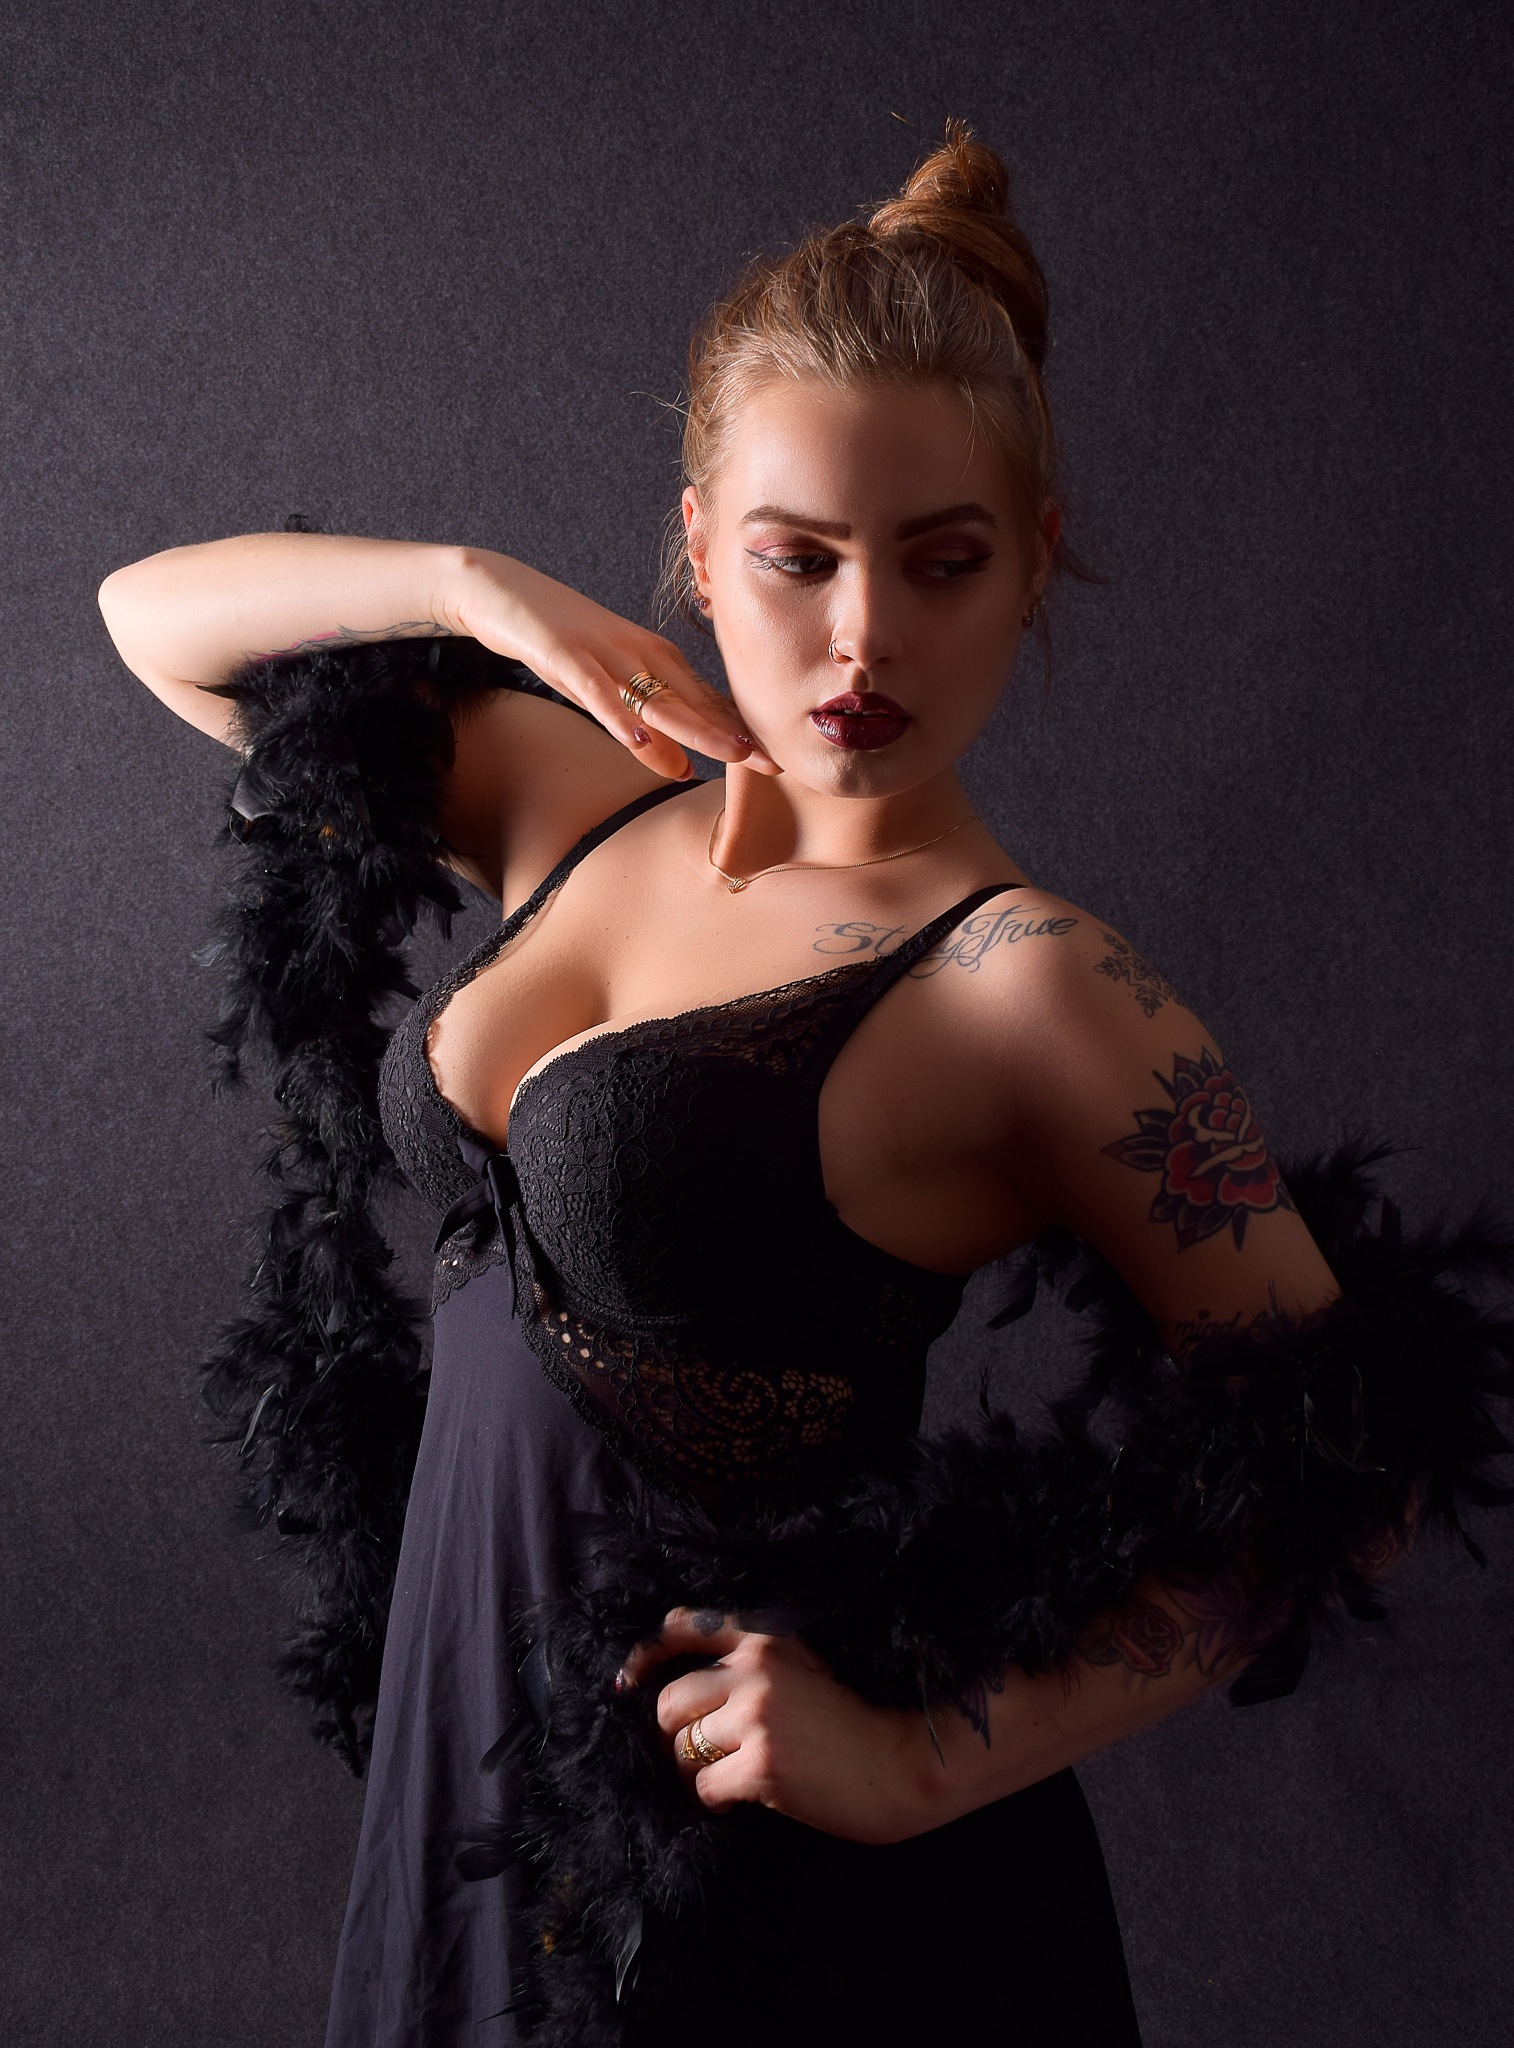 modell by GGPhoto